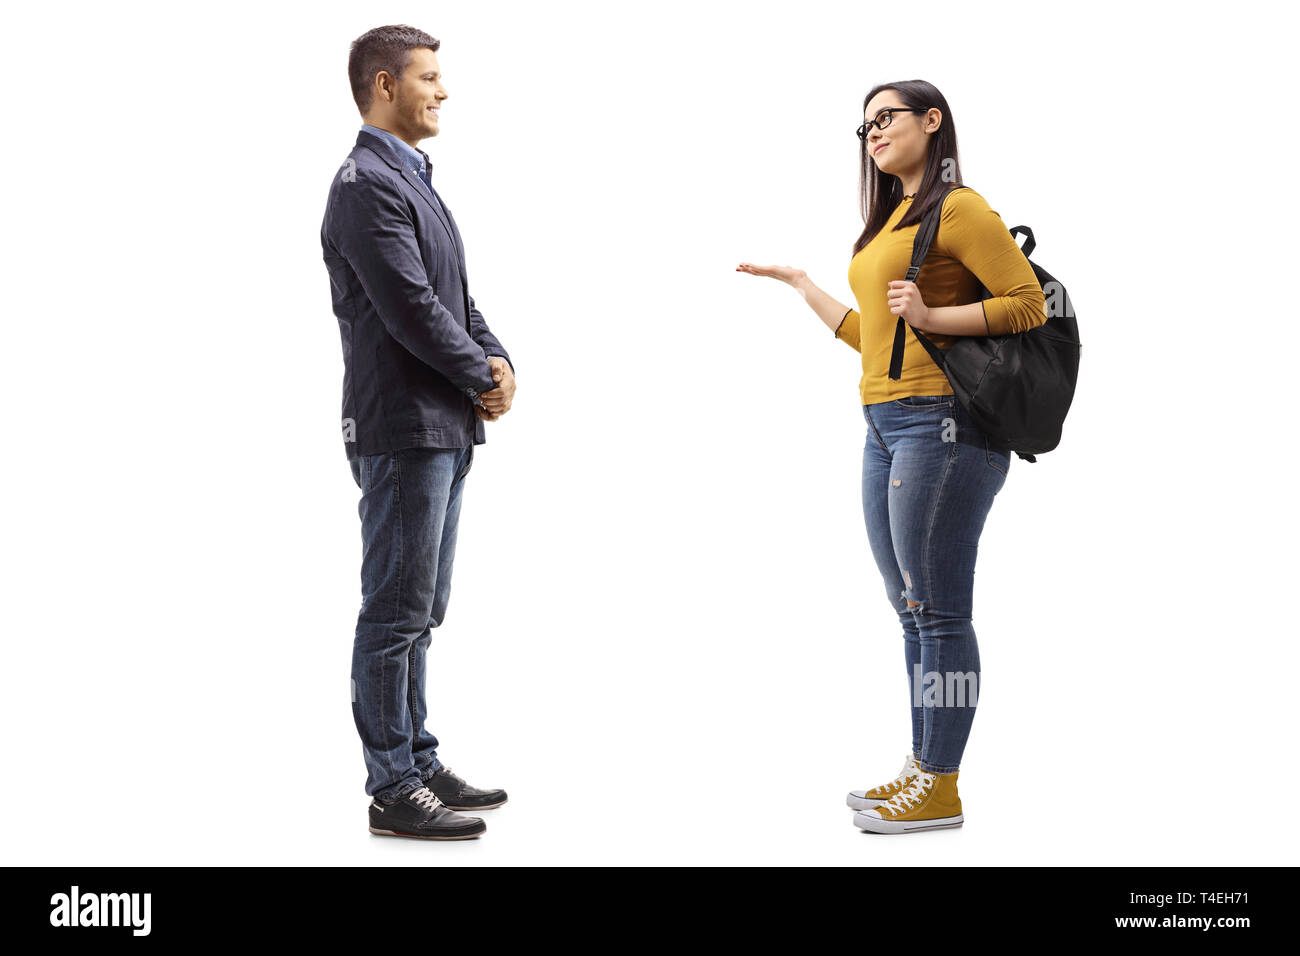 Full length shot of a young man talking with a female student gesturing with hand isolated on white background - Stock Image